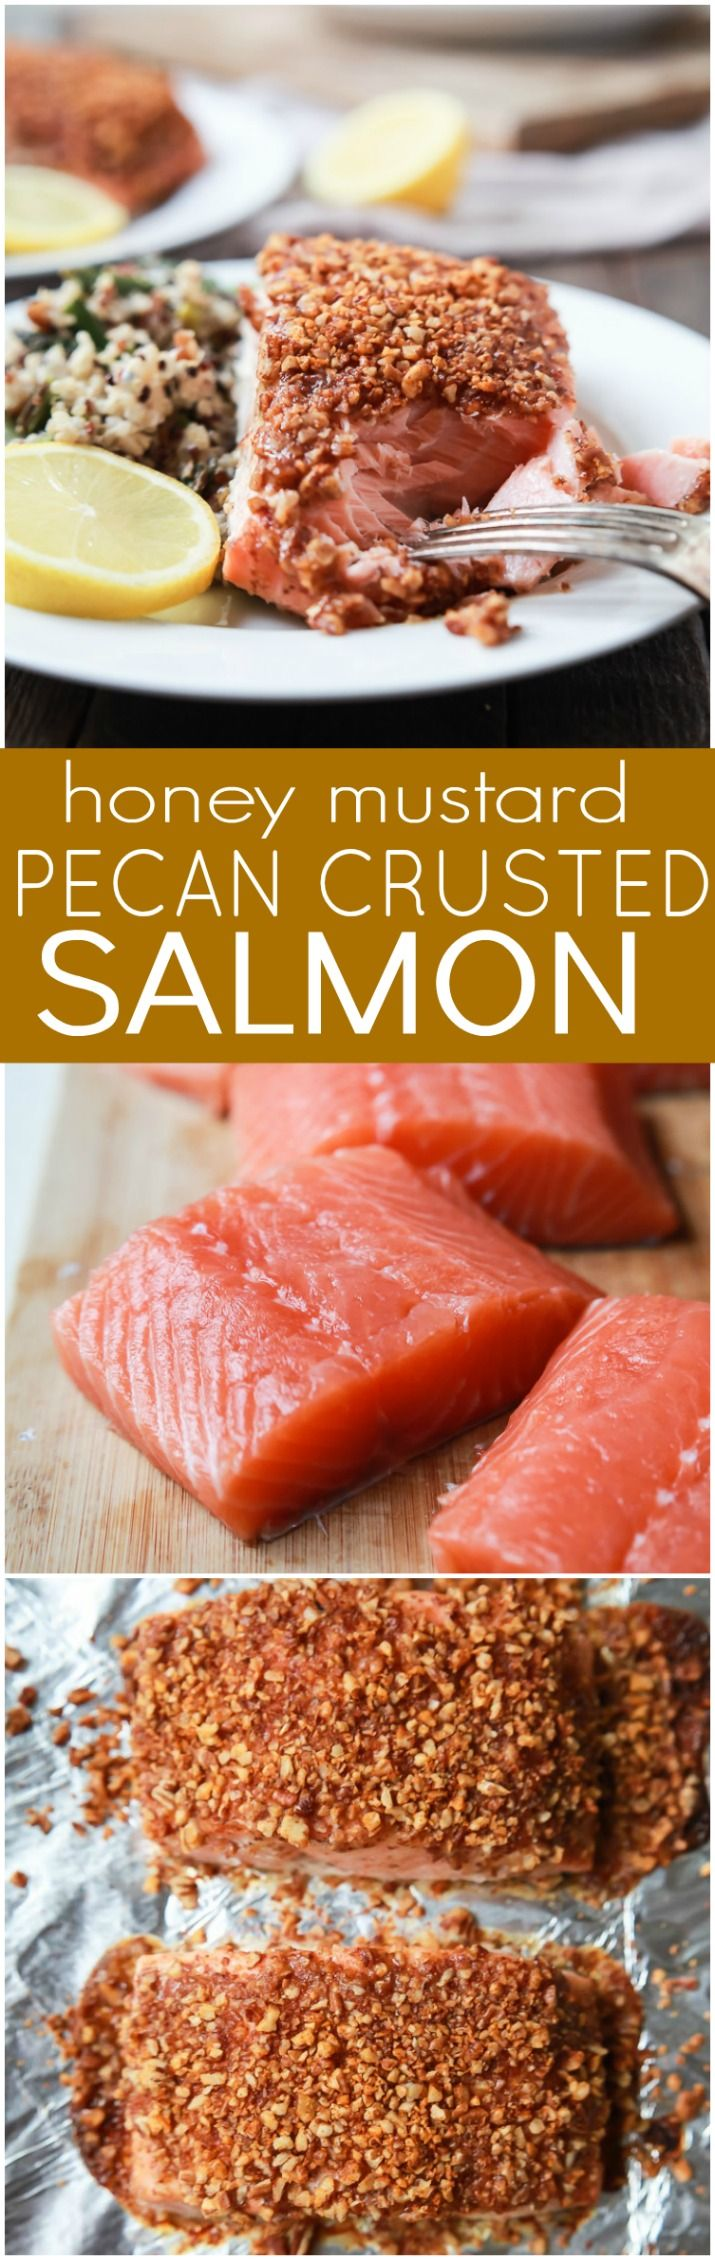 Impress your family or dinner guests with this easy Honey Mustard Pecan Crusted Salmon recipe. All you'll need is 5 ingredients and 15 minutes to make this dynamite meal! Dinner just got easier! | joyfulhealthyeats.com #paleo #glutenfree